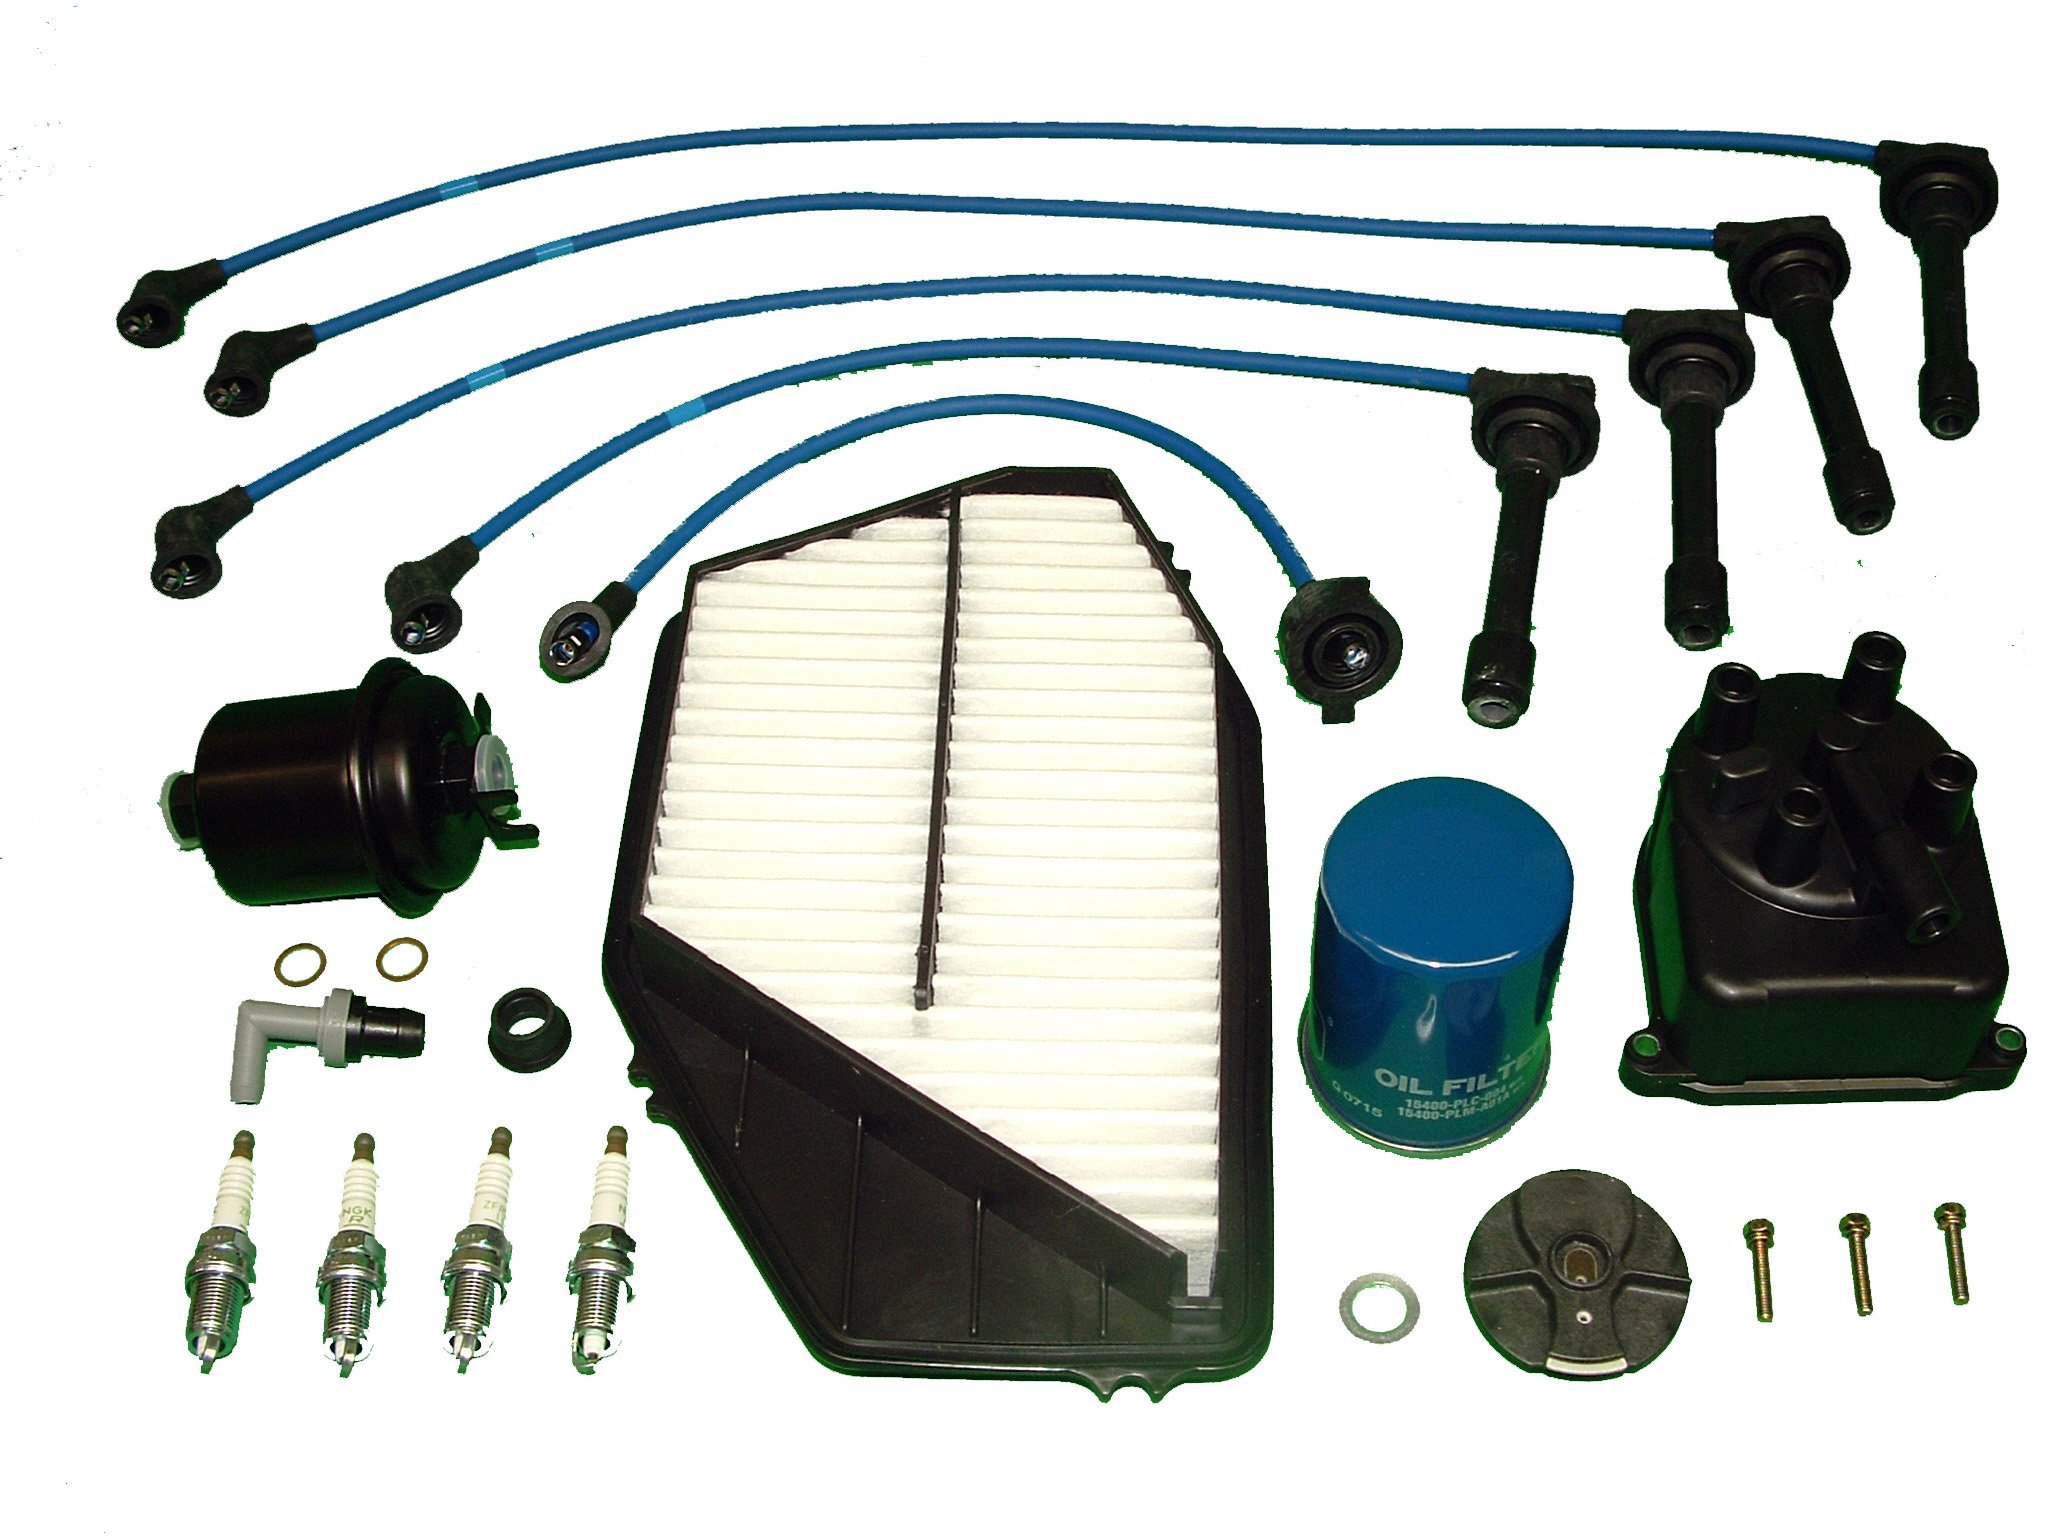 Tune Up Kit Includes Distributor Cap and Rotor all filters NGK plugs and Ignition Wires Compatible With Honda Accord LX DX 1994 to 1997 by TBK Timing Belt Kit